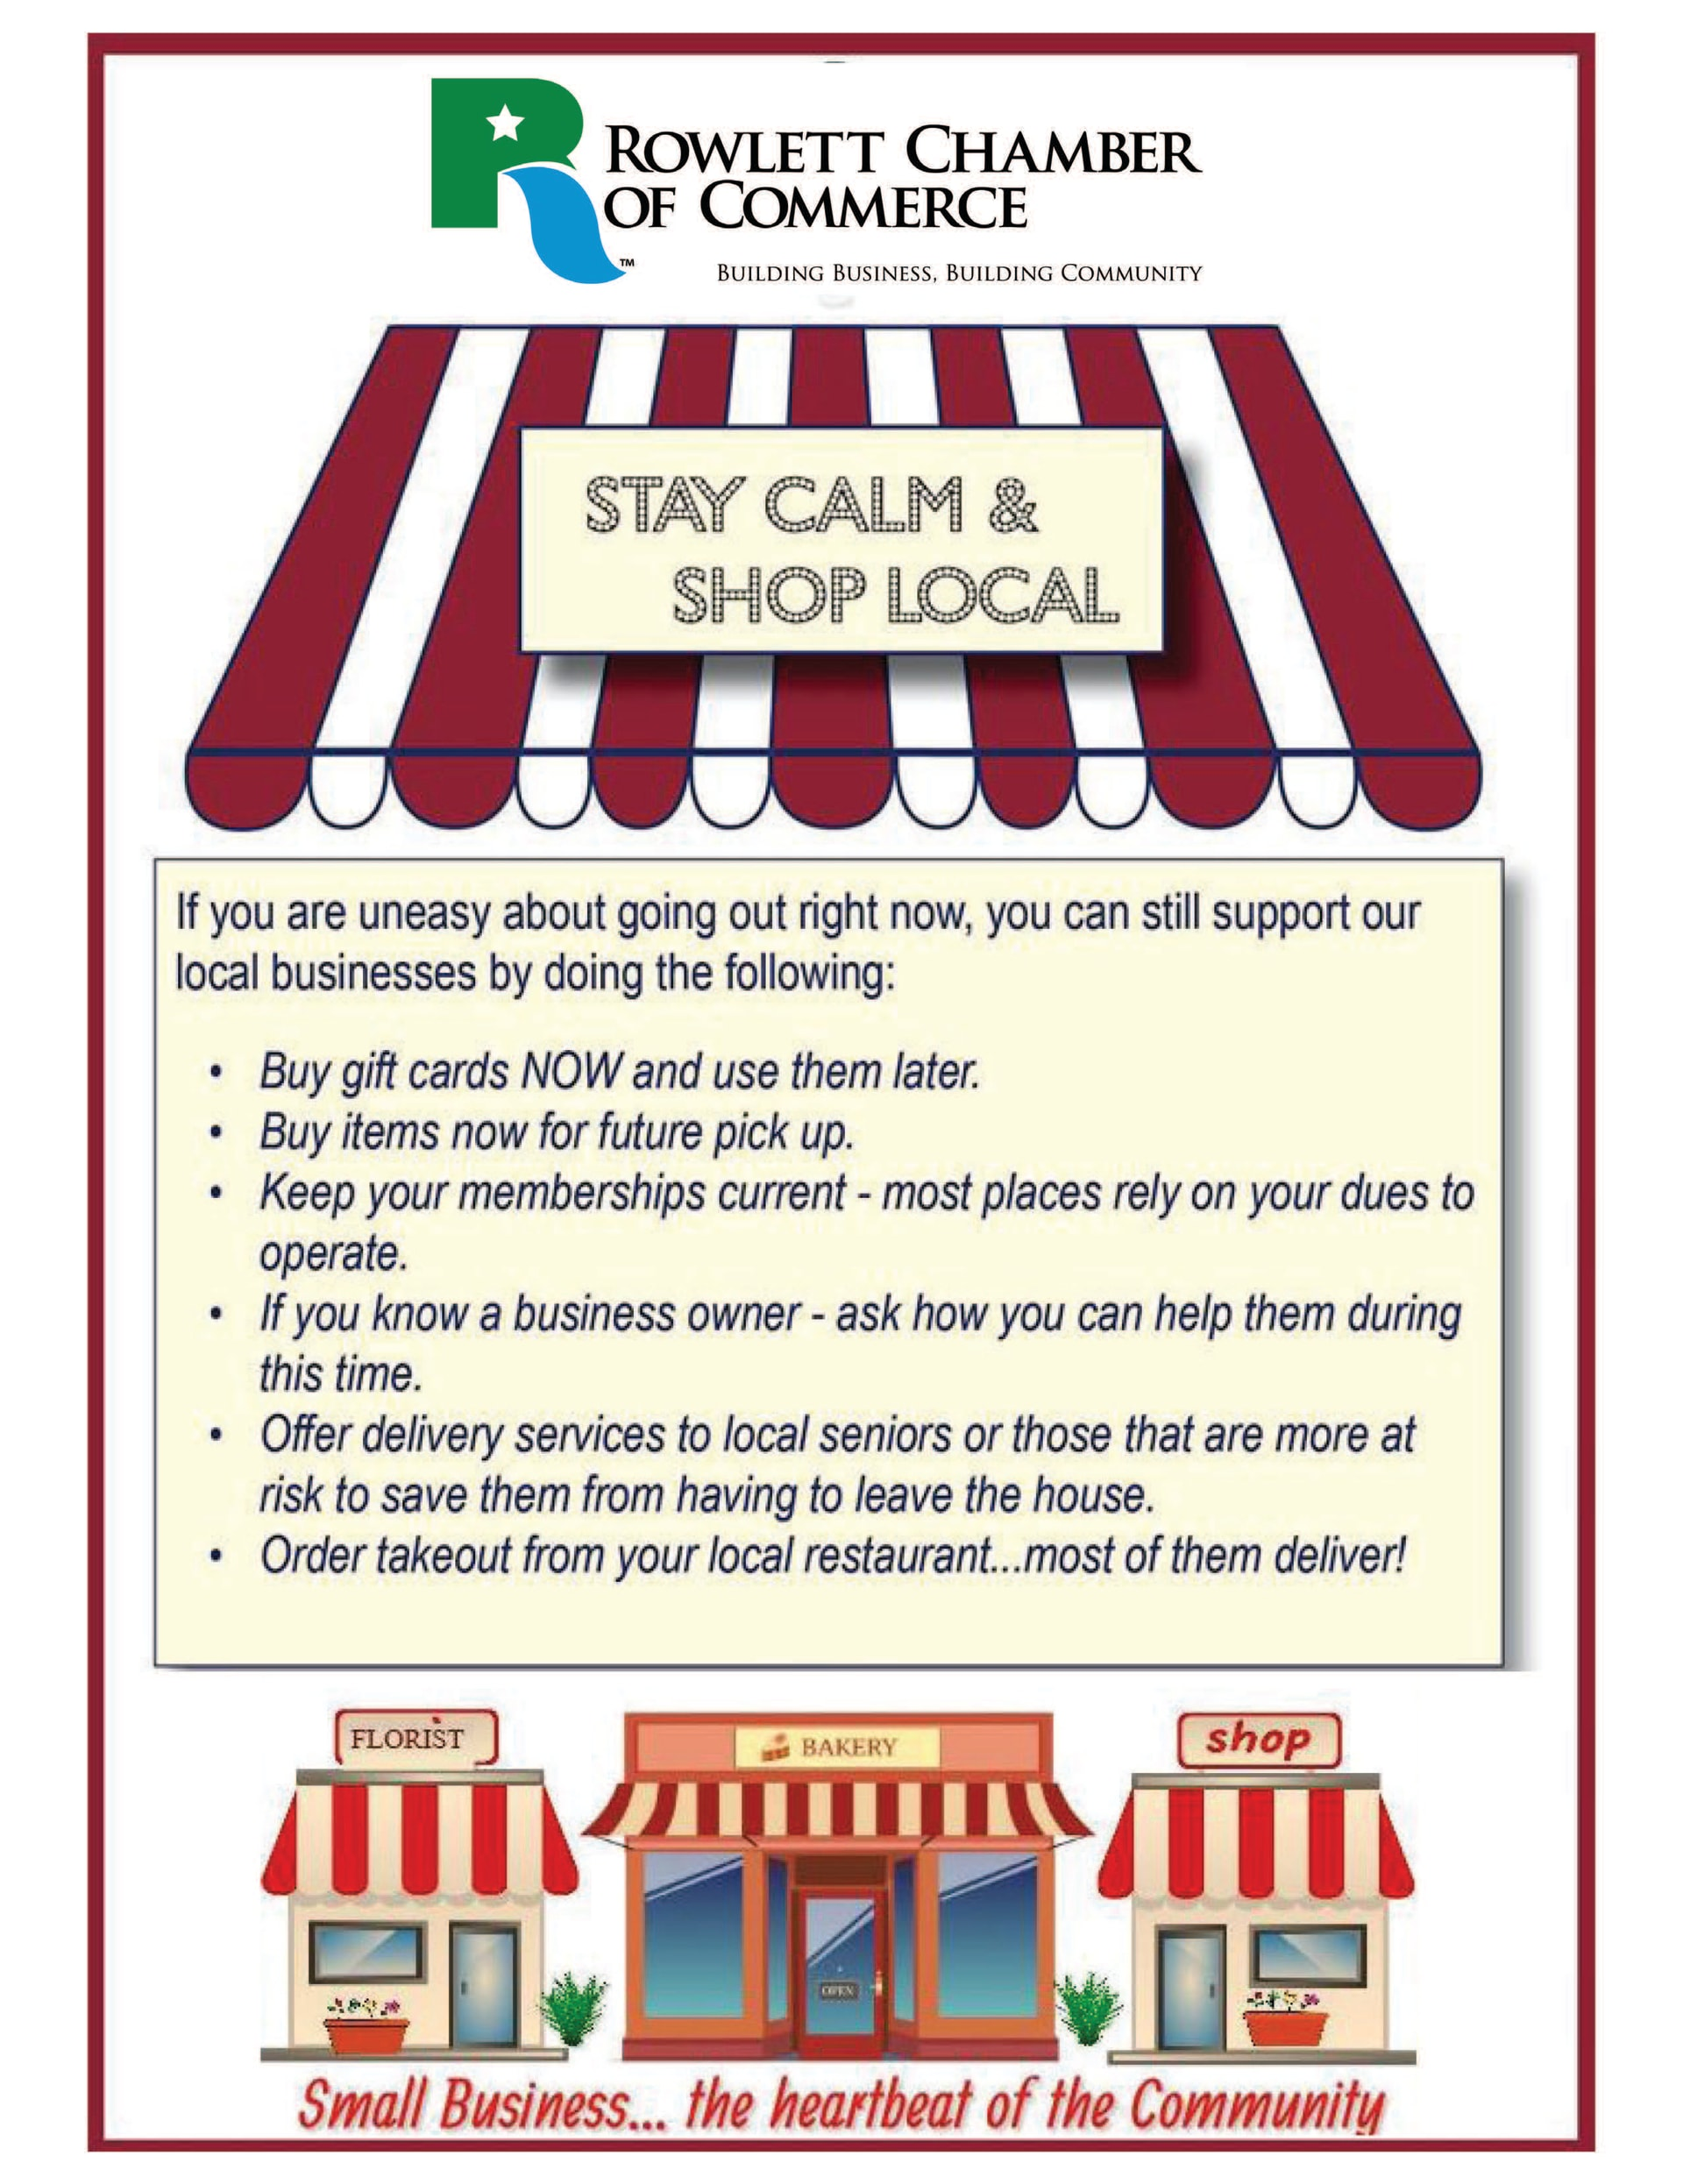 Support Local Business - Stay Calm & Shop Local